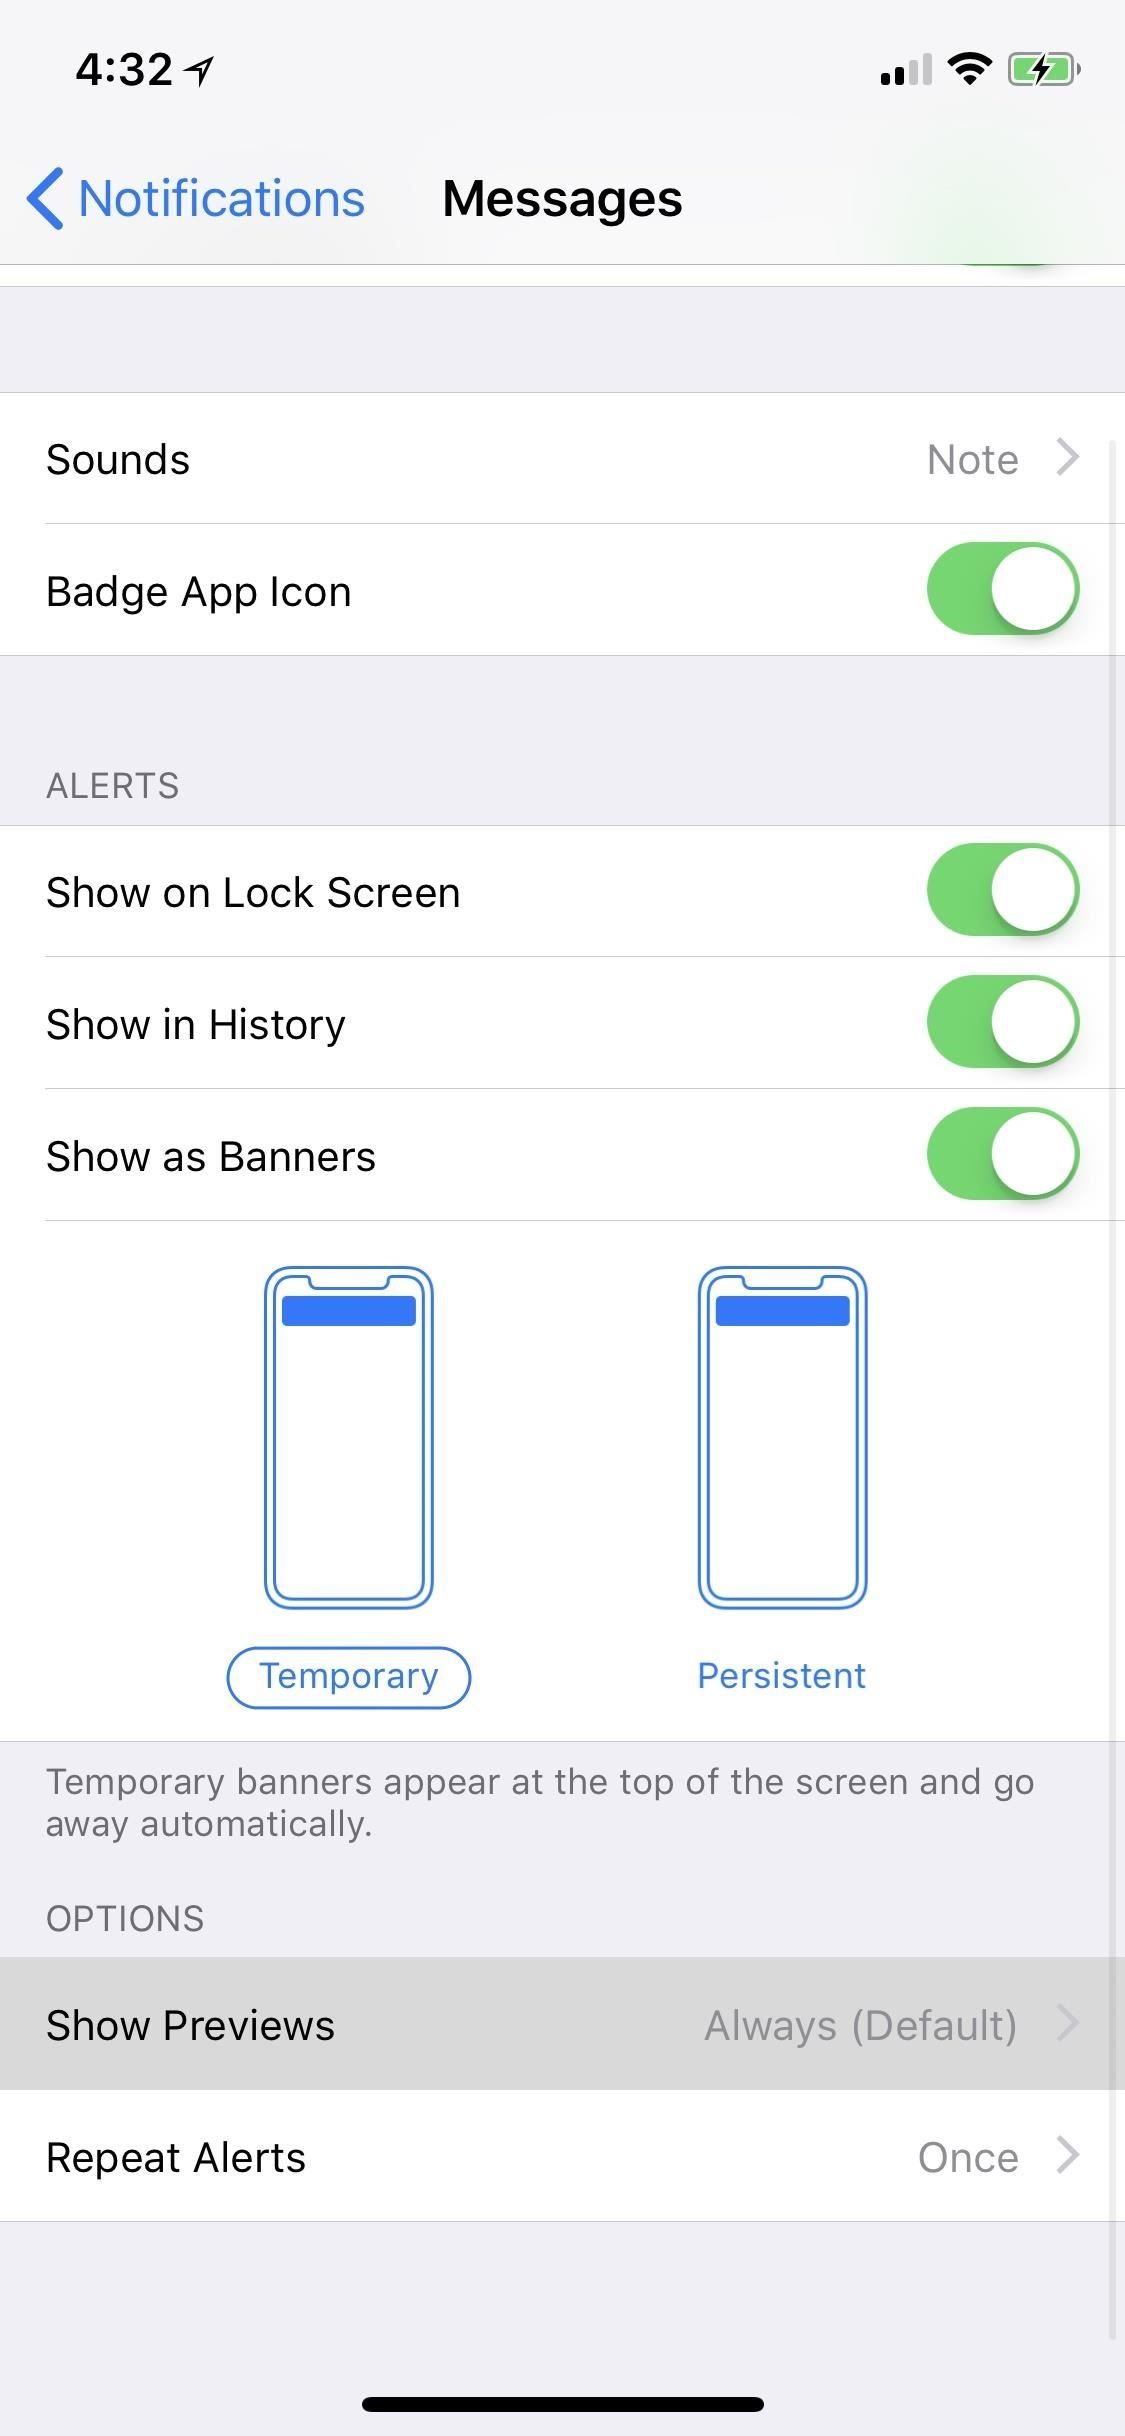 iOS Security 101: How to Keep Private Messages on Your iPhone's Lock Screen for Your Eyes Only